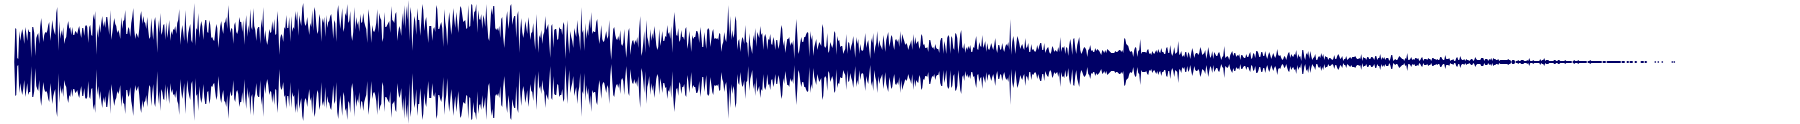 waveform of track #74273